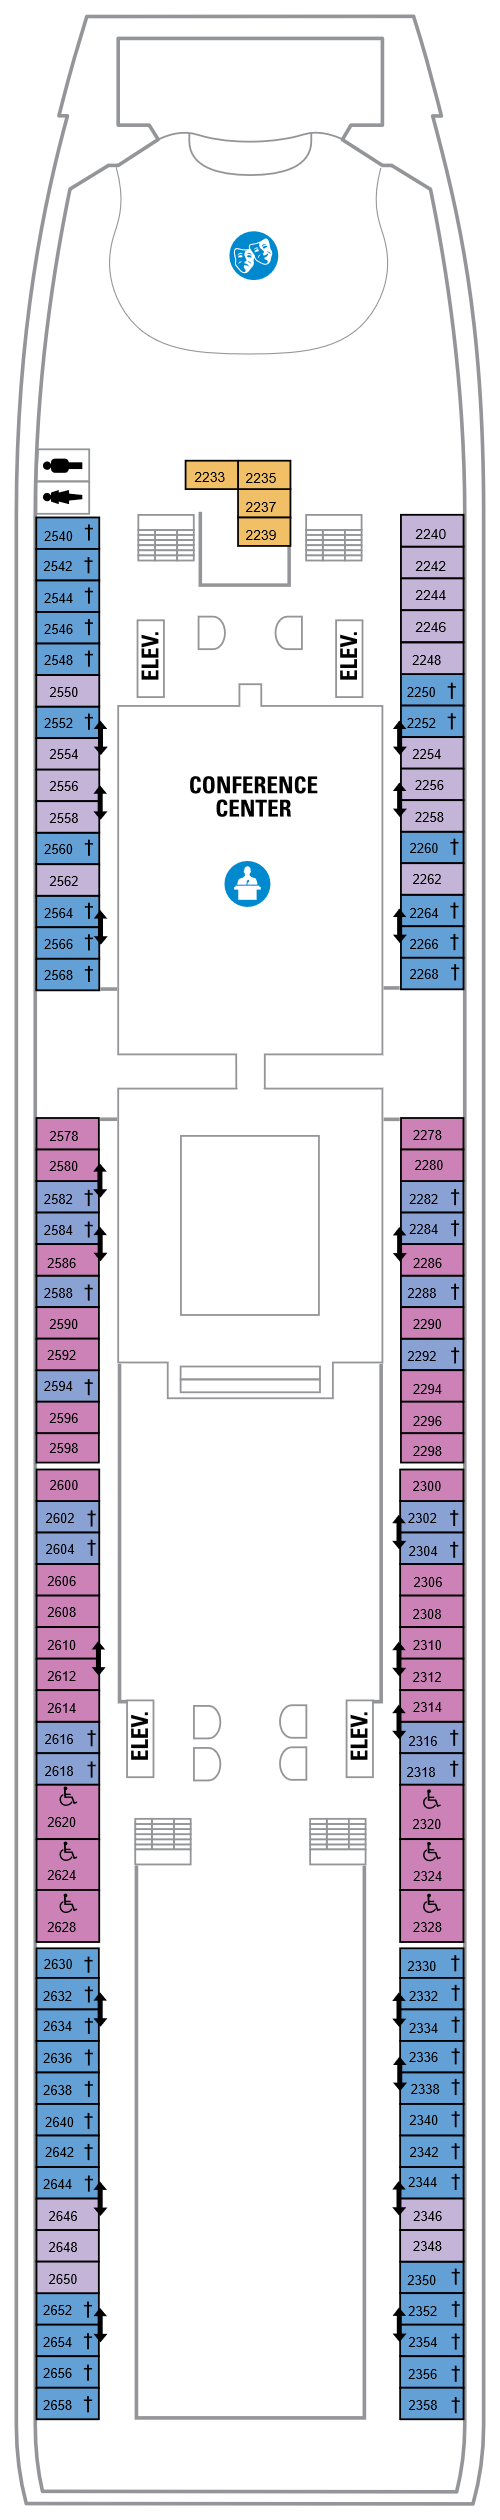 Mariner Of The Seas Deck 2 layout